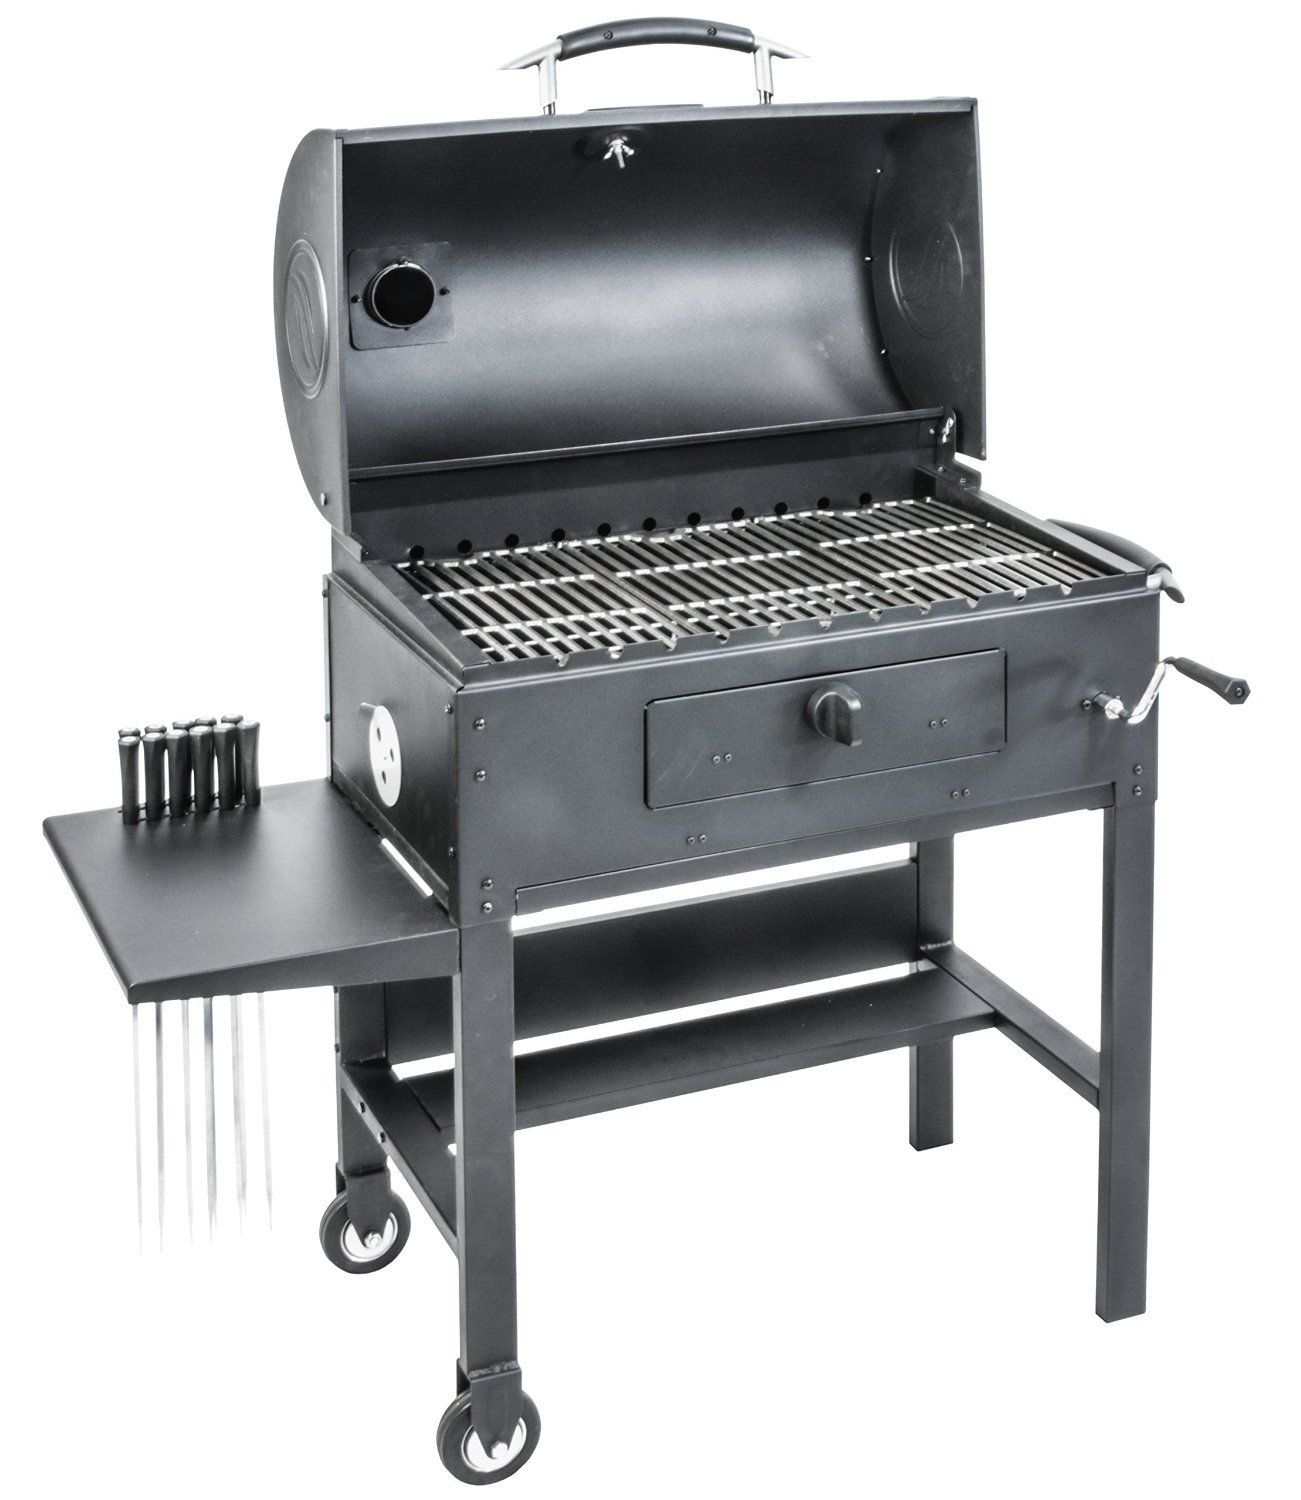 Using a grill as a smoker